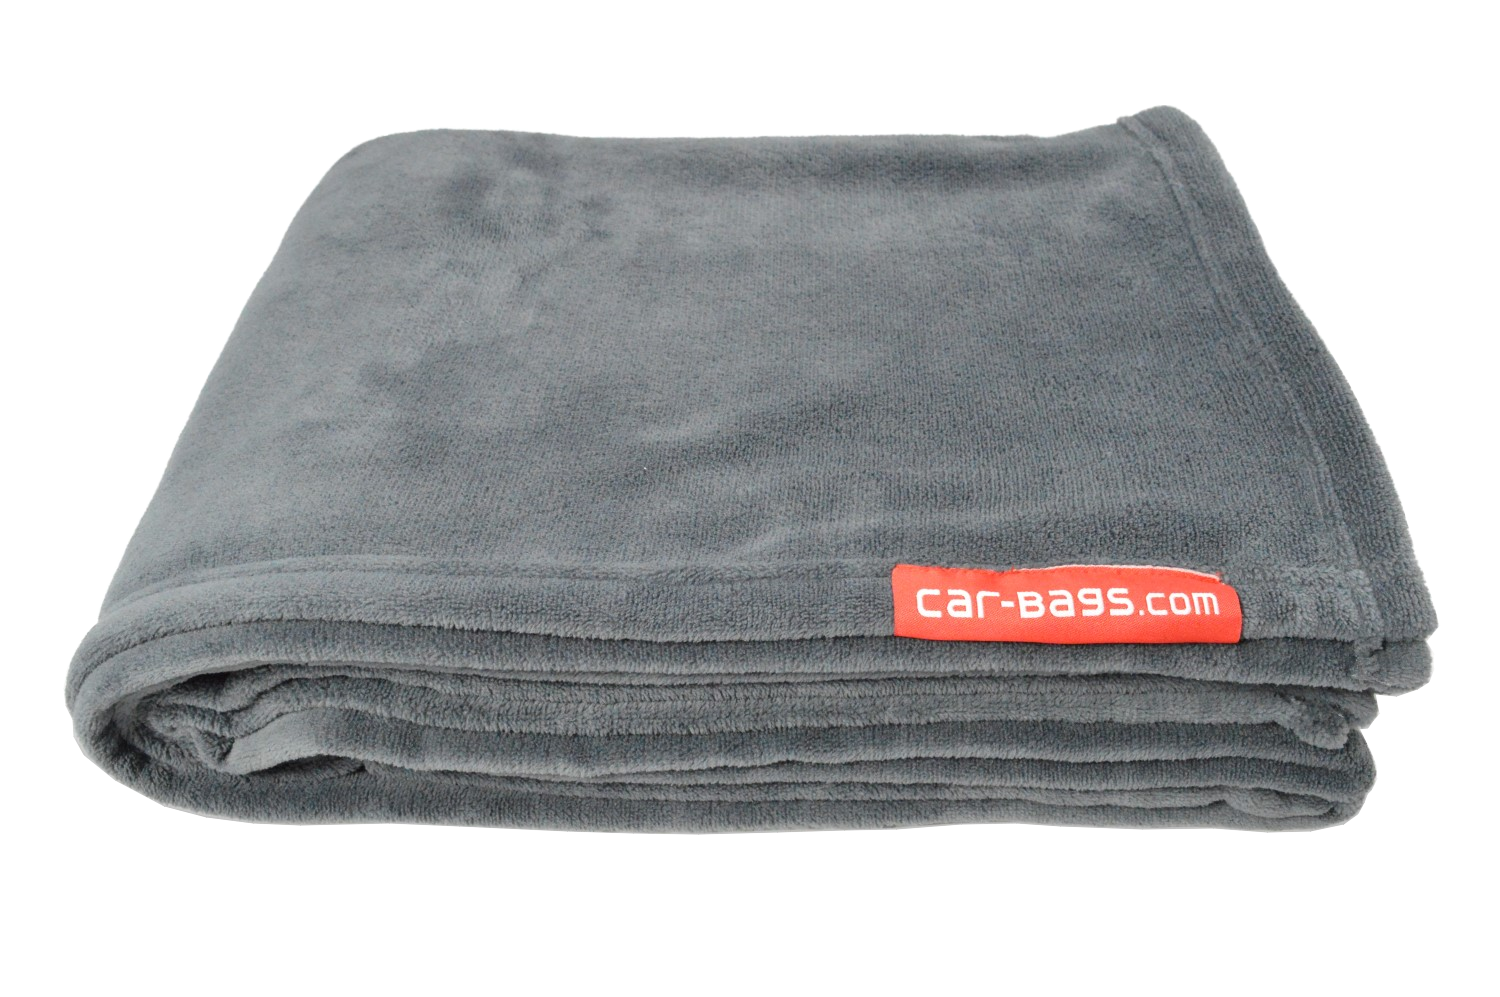 Car-Bags.com Fleecedecke